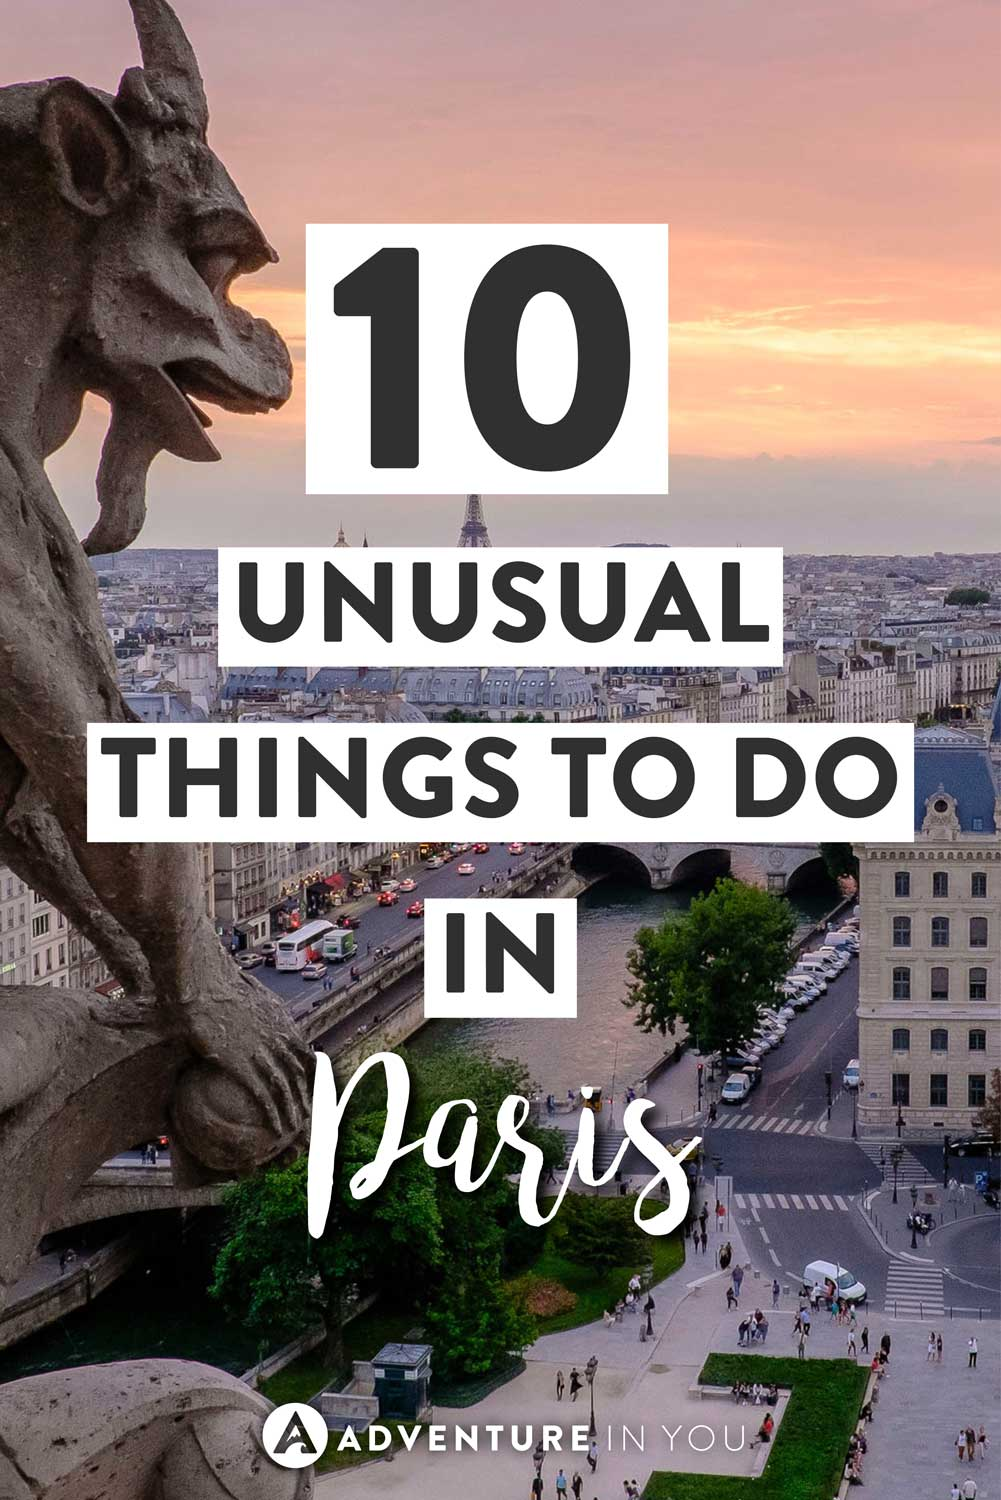 Paris Travel | Looking for unusual things to do in Paris? Check out this guide on the best things to do in Paris aside from museums and shopping.